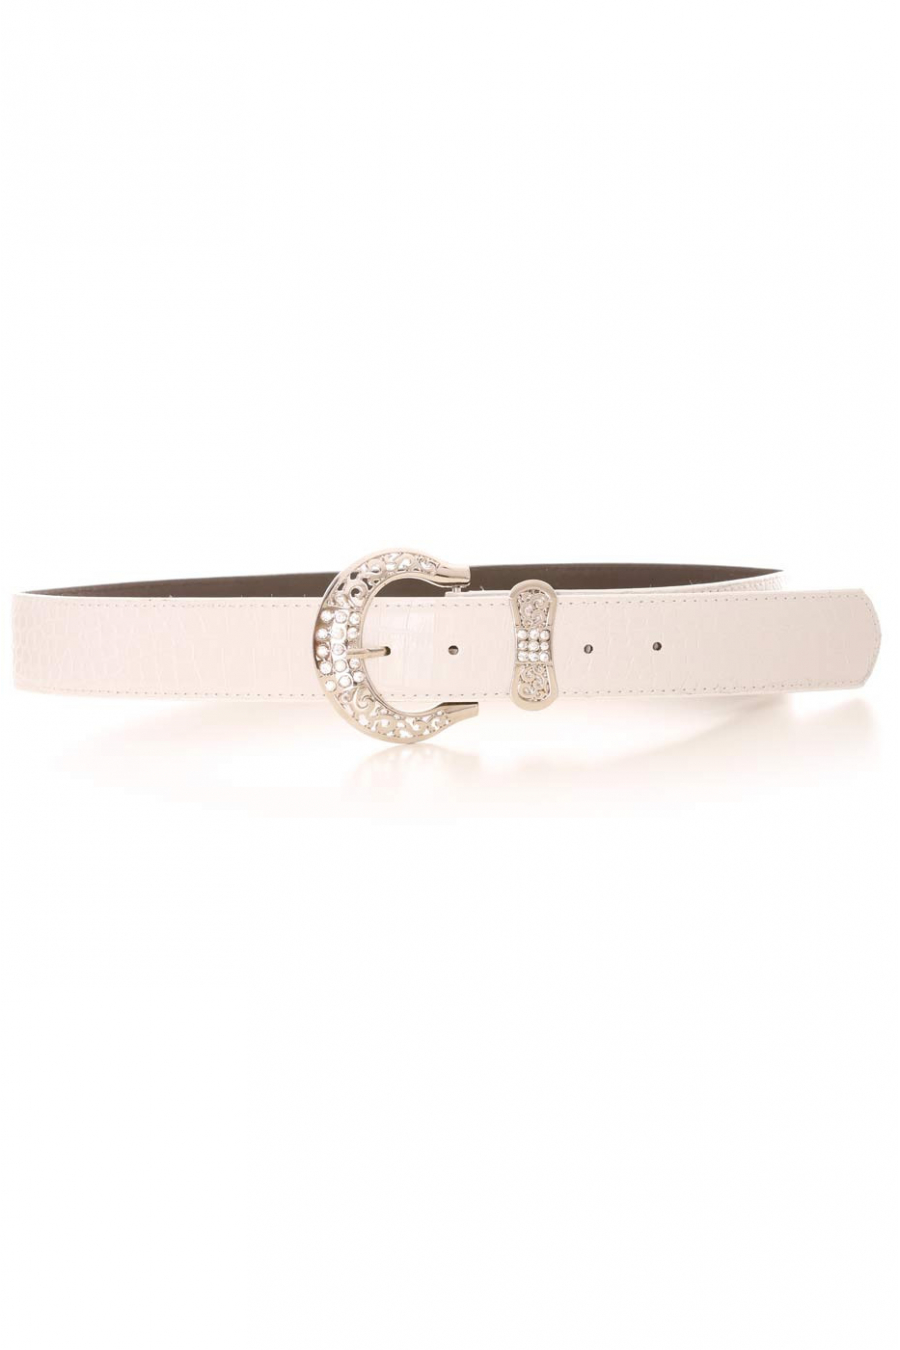 White croc-effect belt with silver rhinestone buckle and bow-shaped loop. PVC accessory